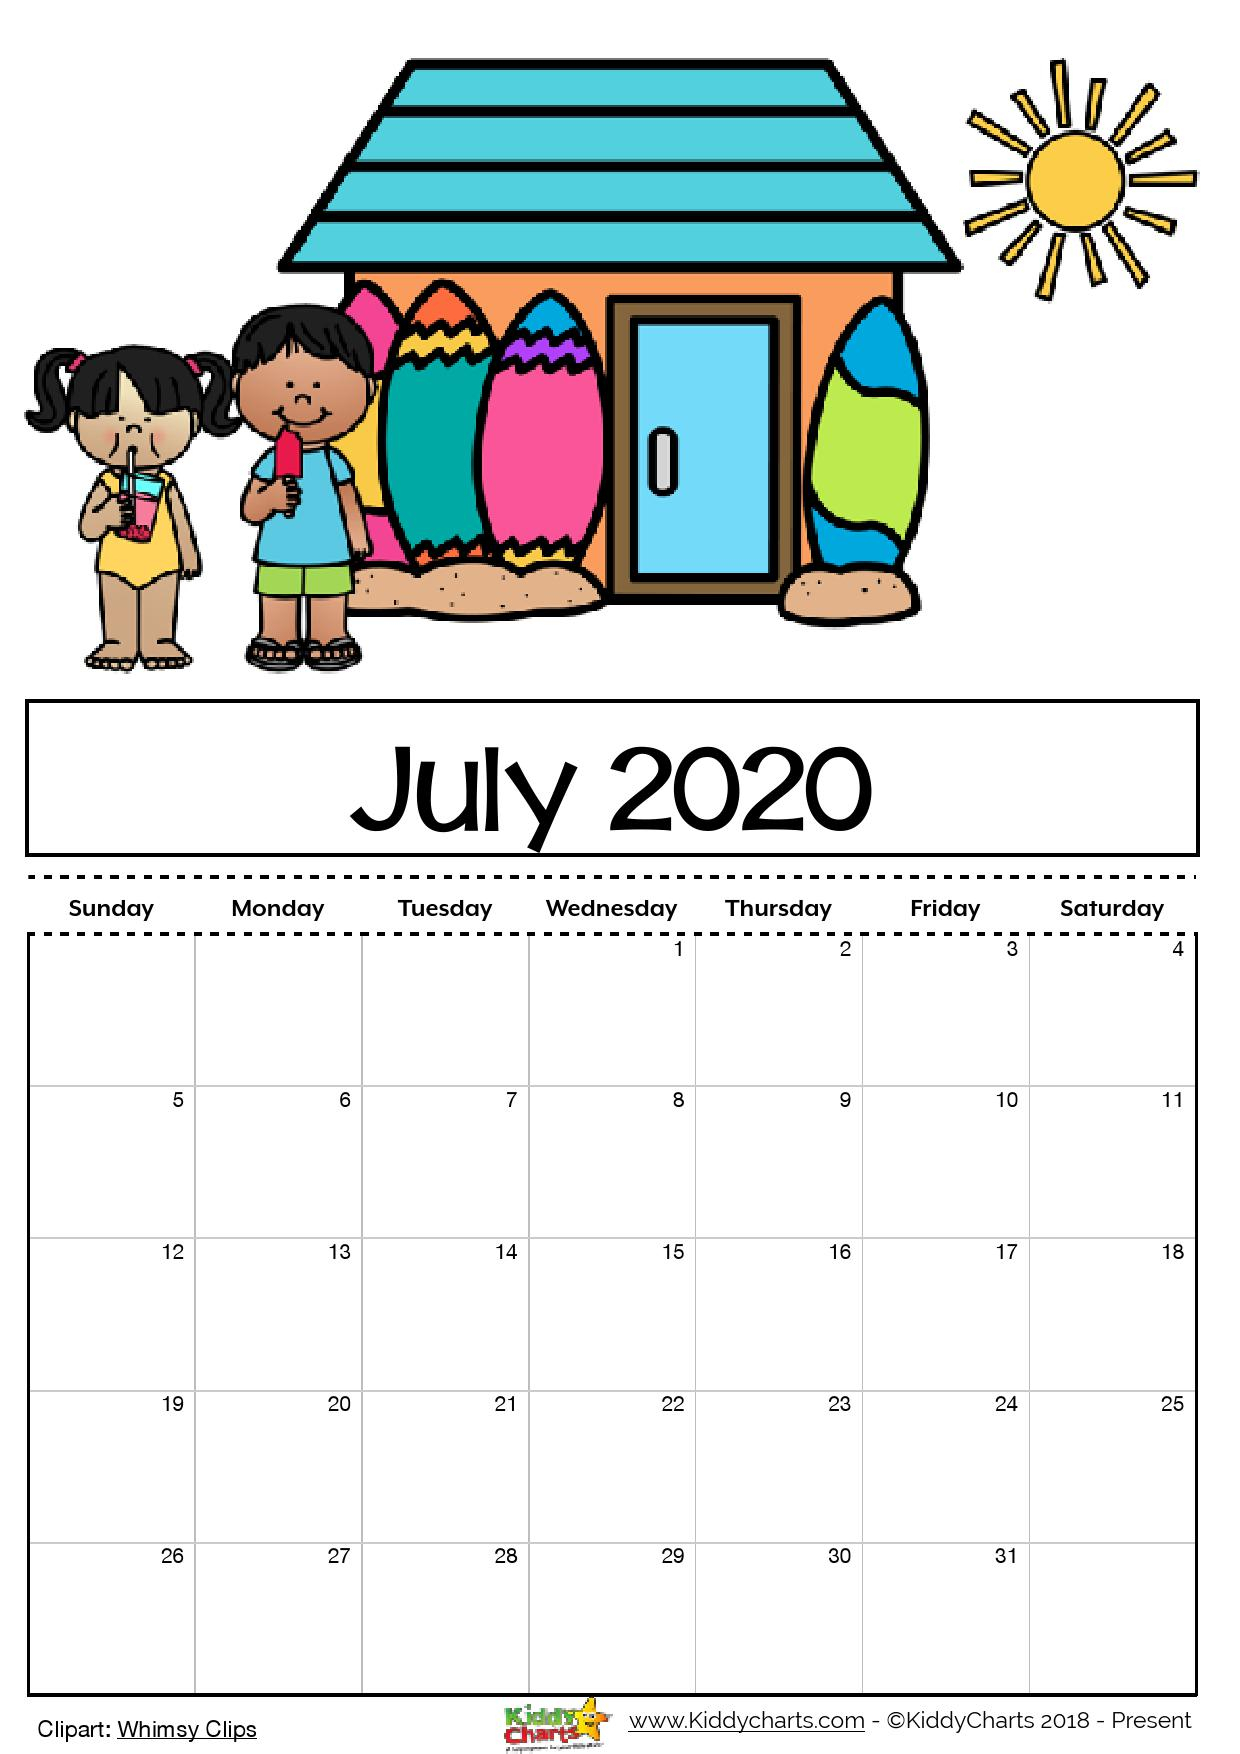 Free Printable 2020 Calendar For Kids, Including An Editable Version intended for 2020 Free Printable Coloring Calendar